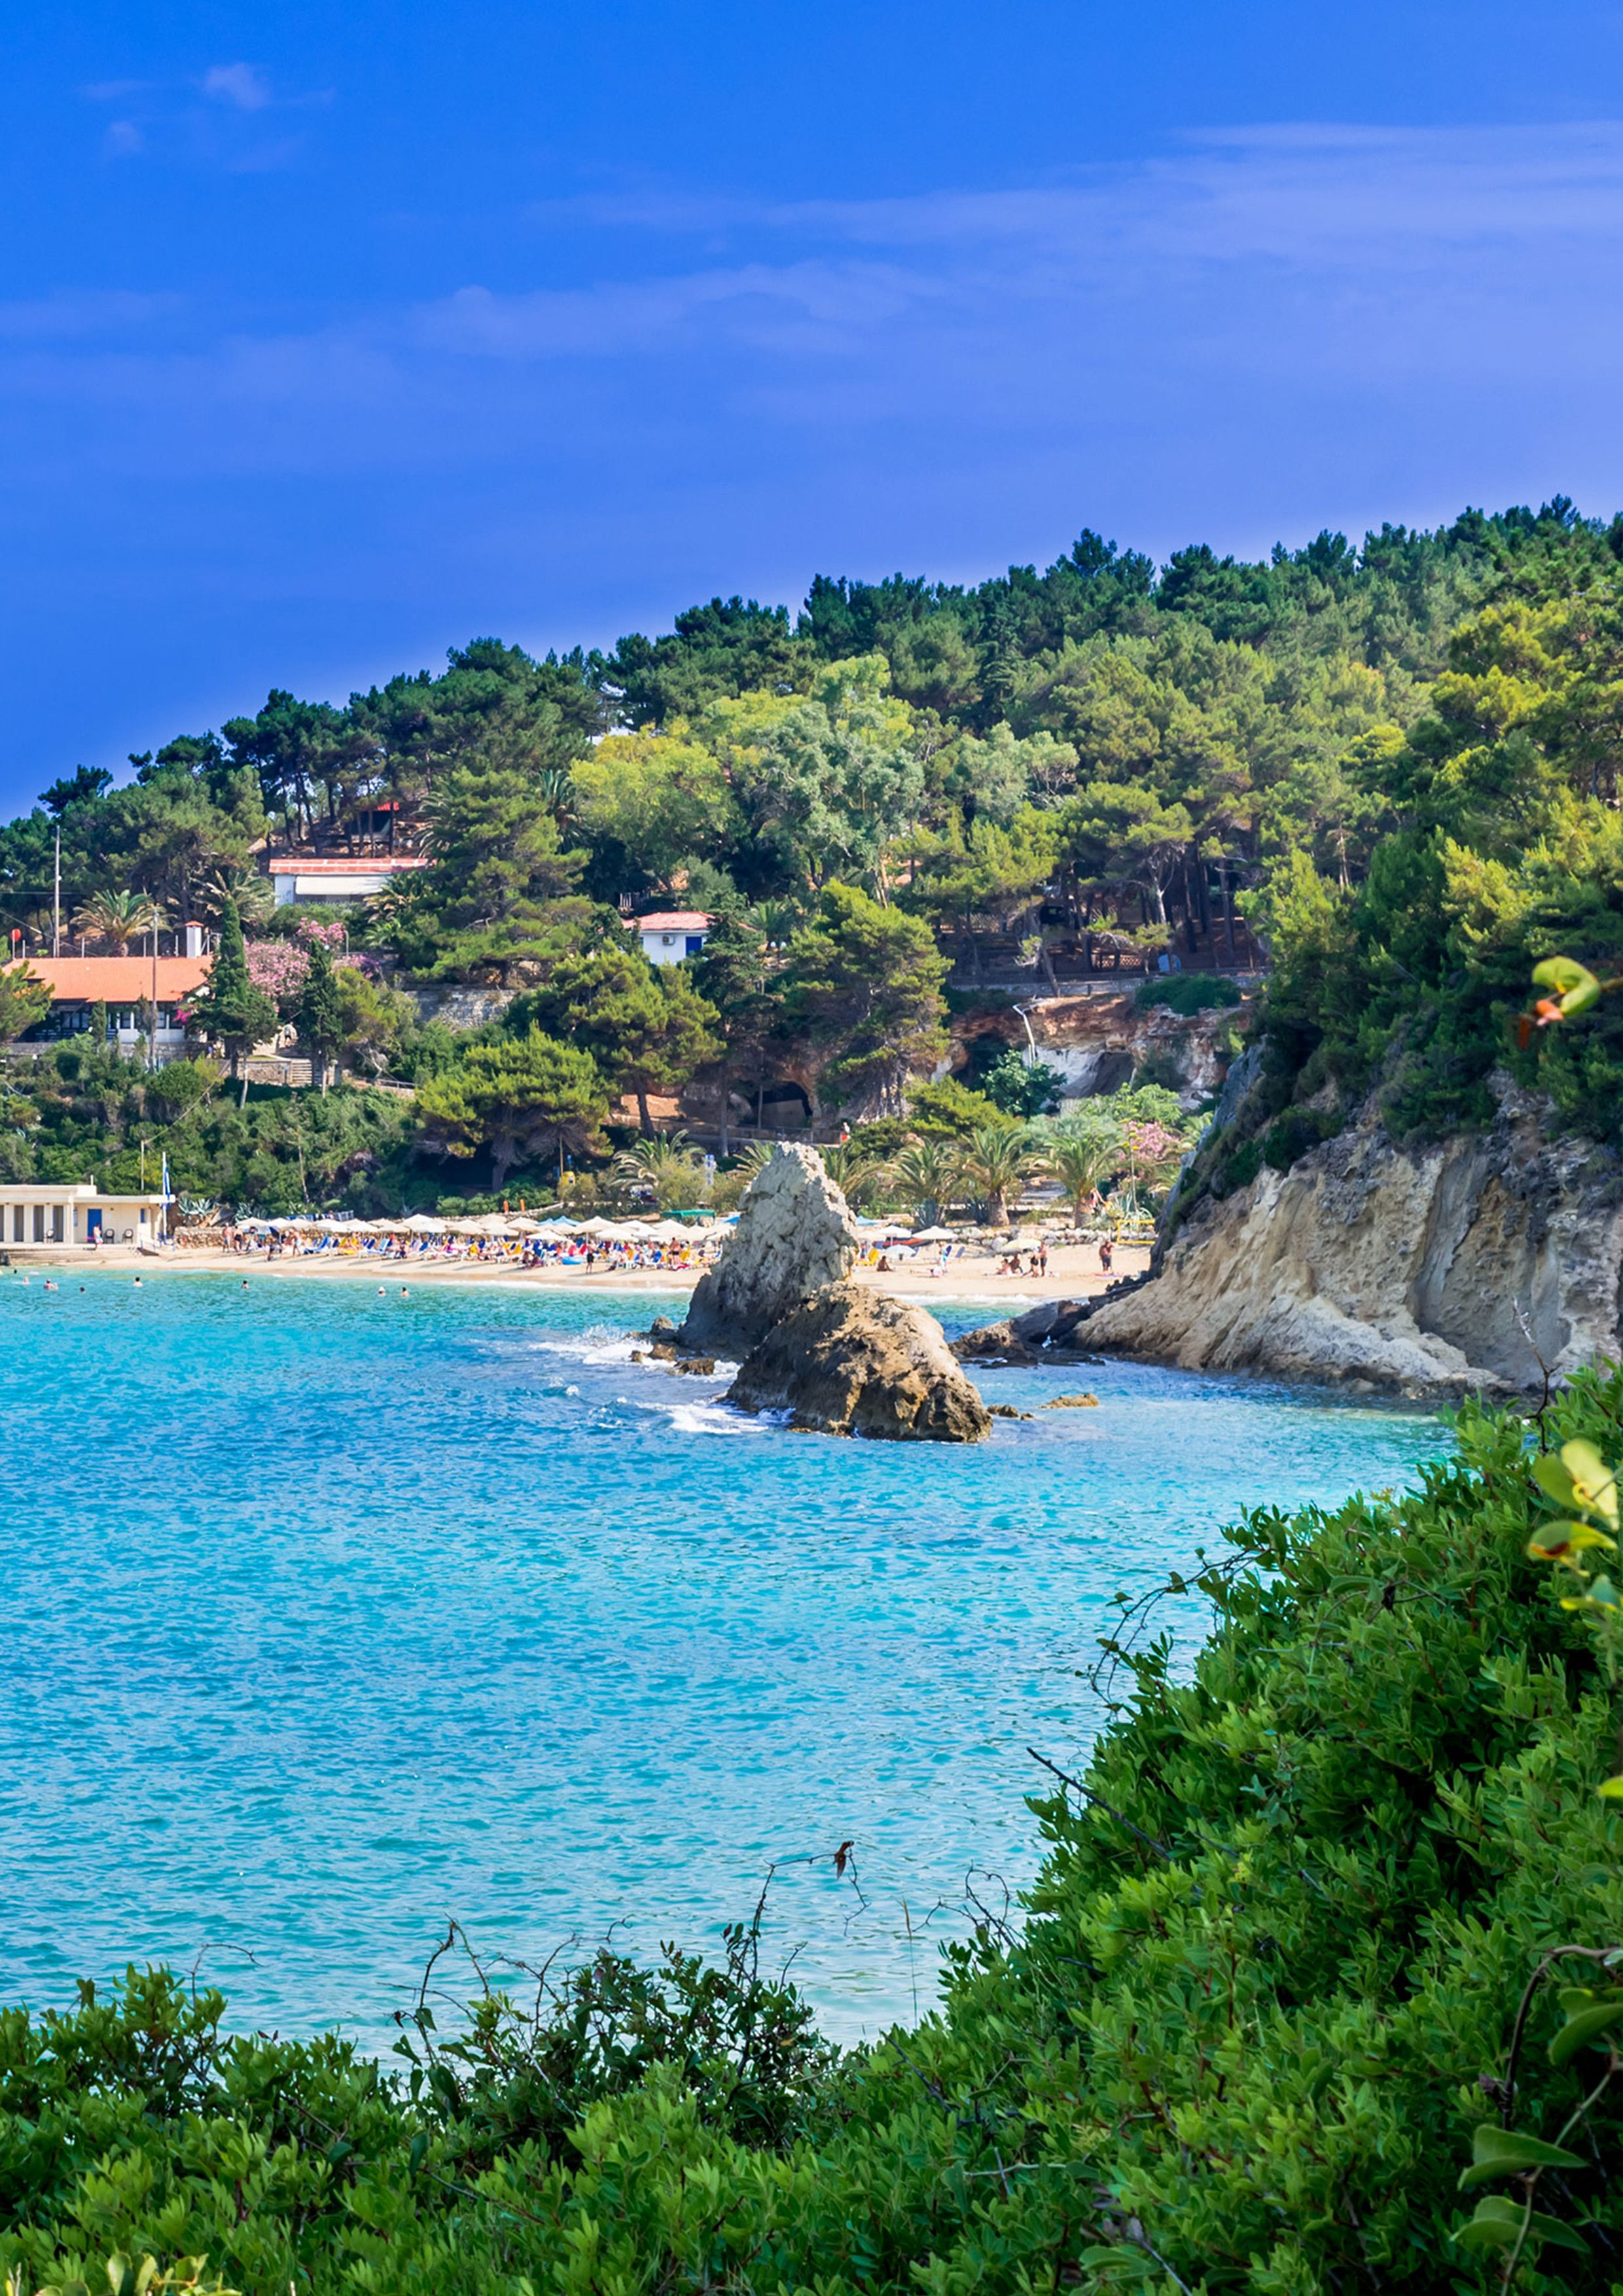 Argostoli The Capital Of Kefalonia The Largest On The Island Is An Attractively Laid Out Greek Town With Small Squares And Court Griekenland Eiland Grieks